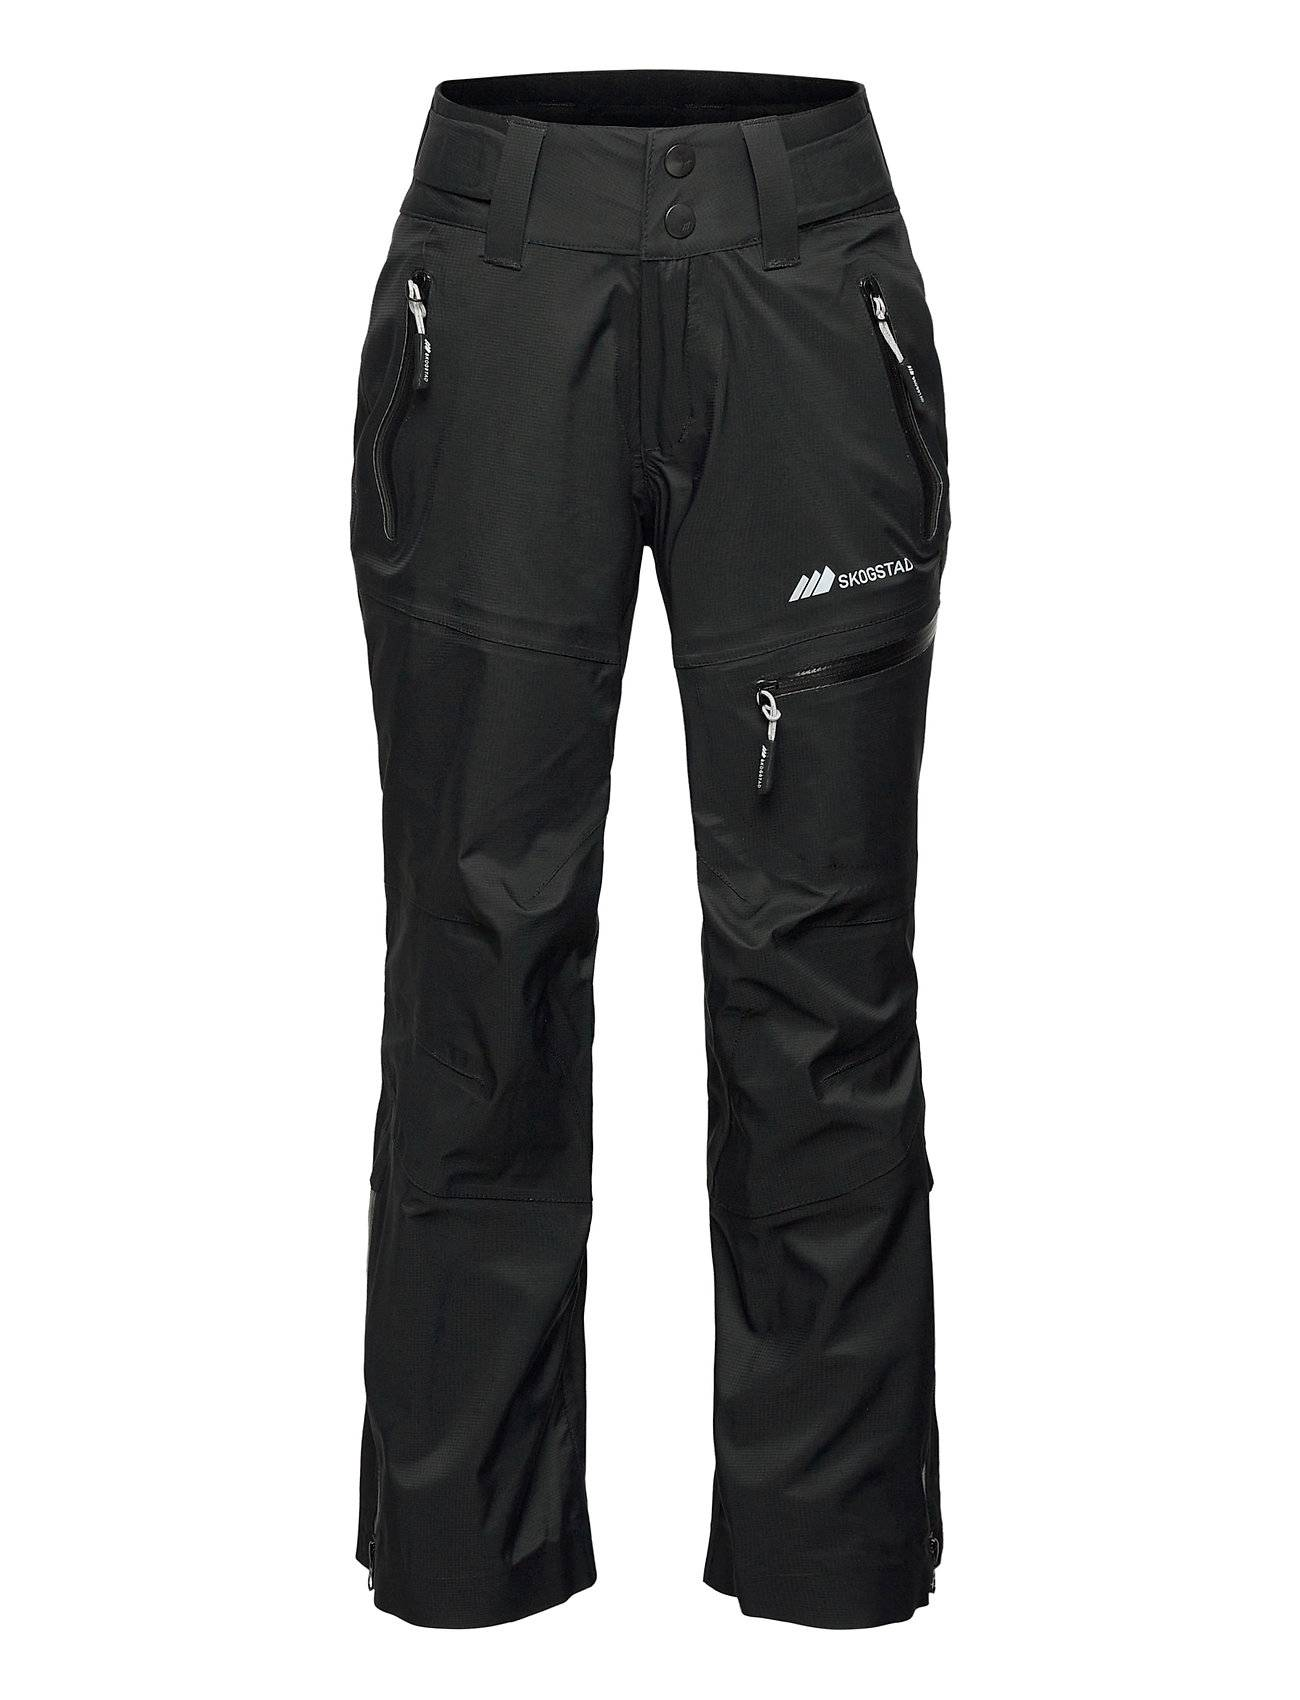 Skogstad Narvik 3-Layer Technical Shell Trouser Outerwear Shell Clothing Softshell Trousers Musta